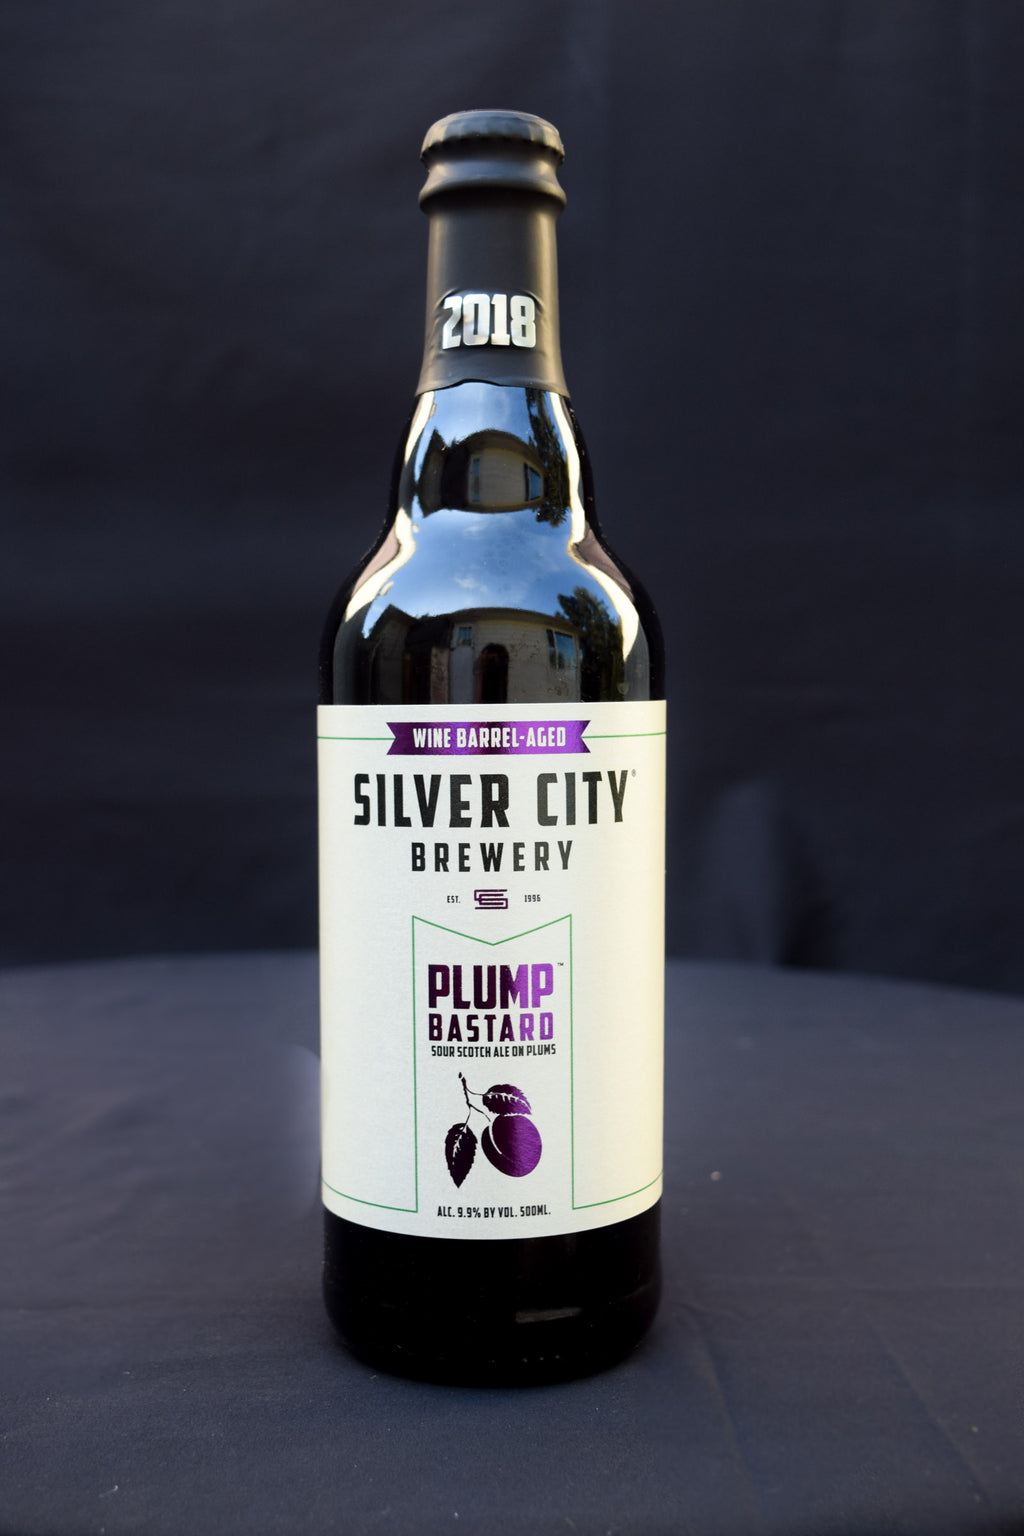 Buy Silver City Wine-Barrel Aged Plump Bastard Sour Scotch Ale on Plums Online